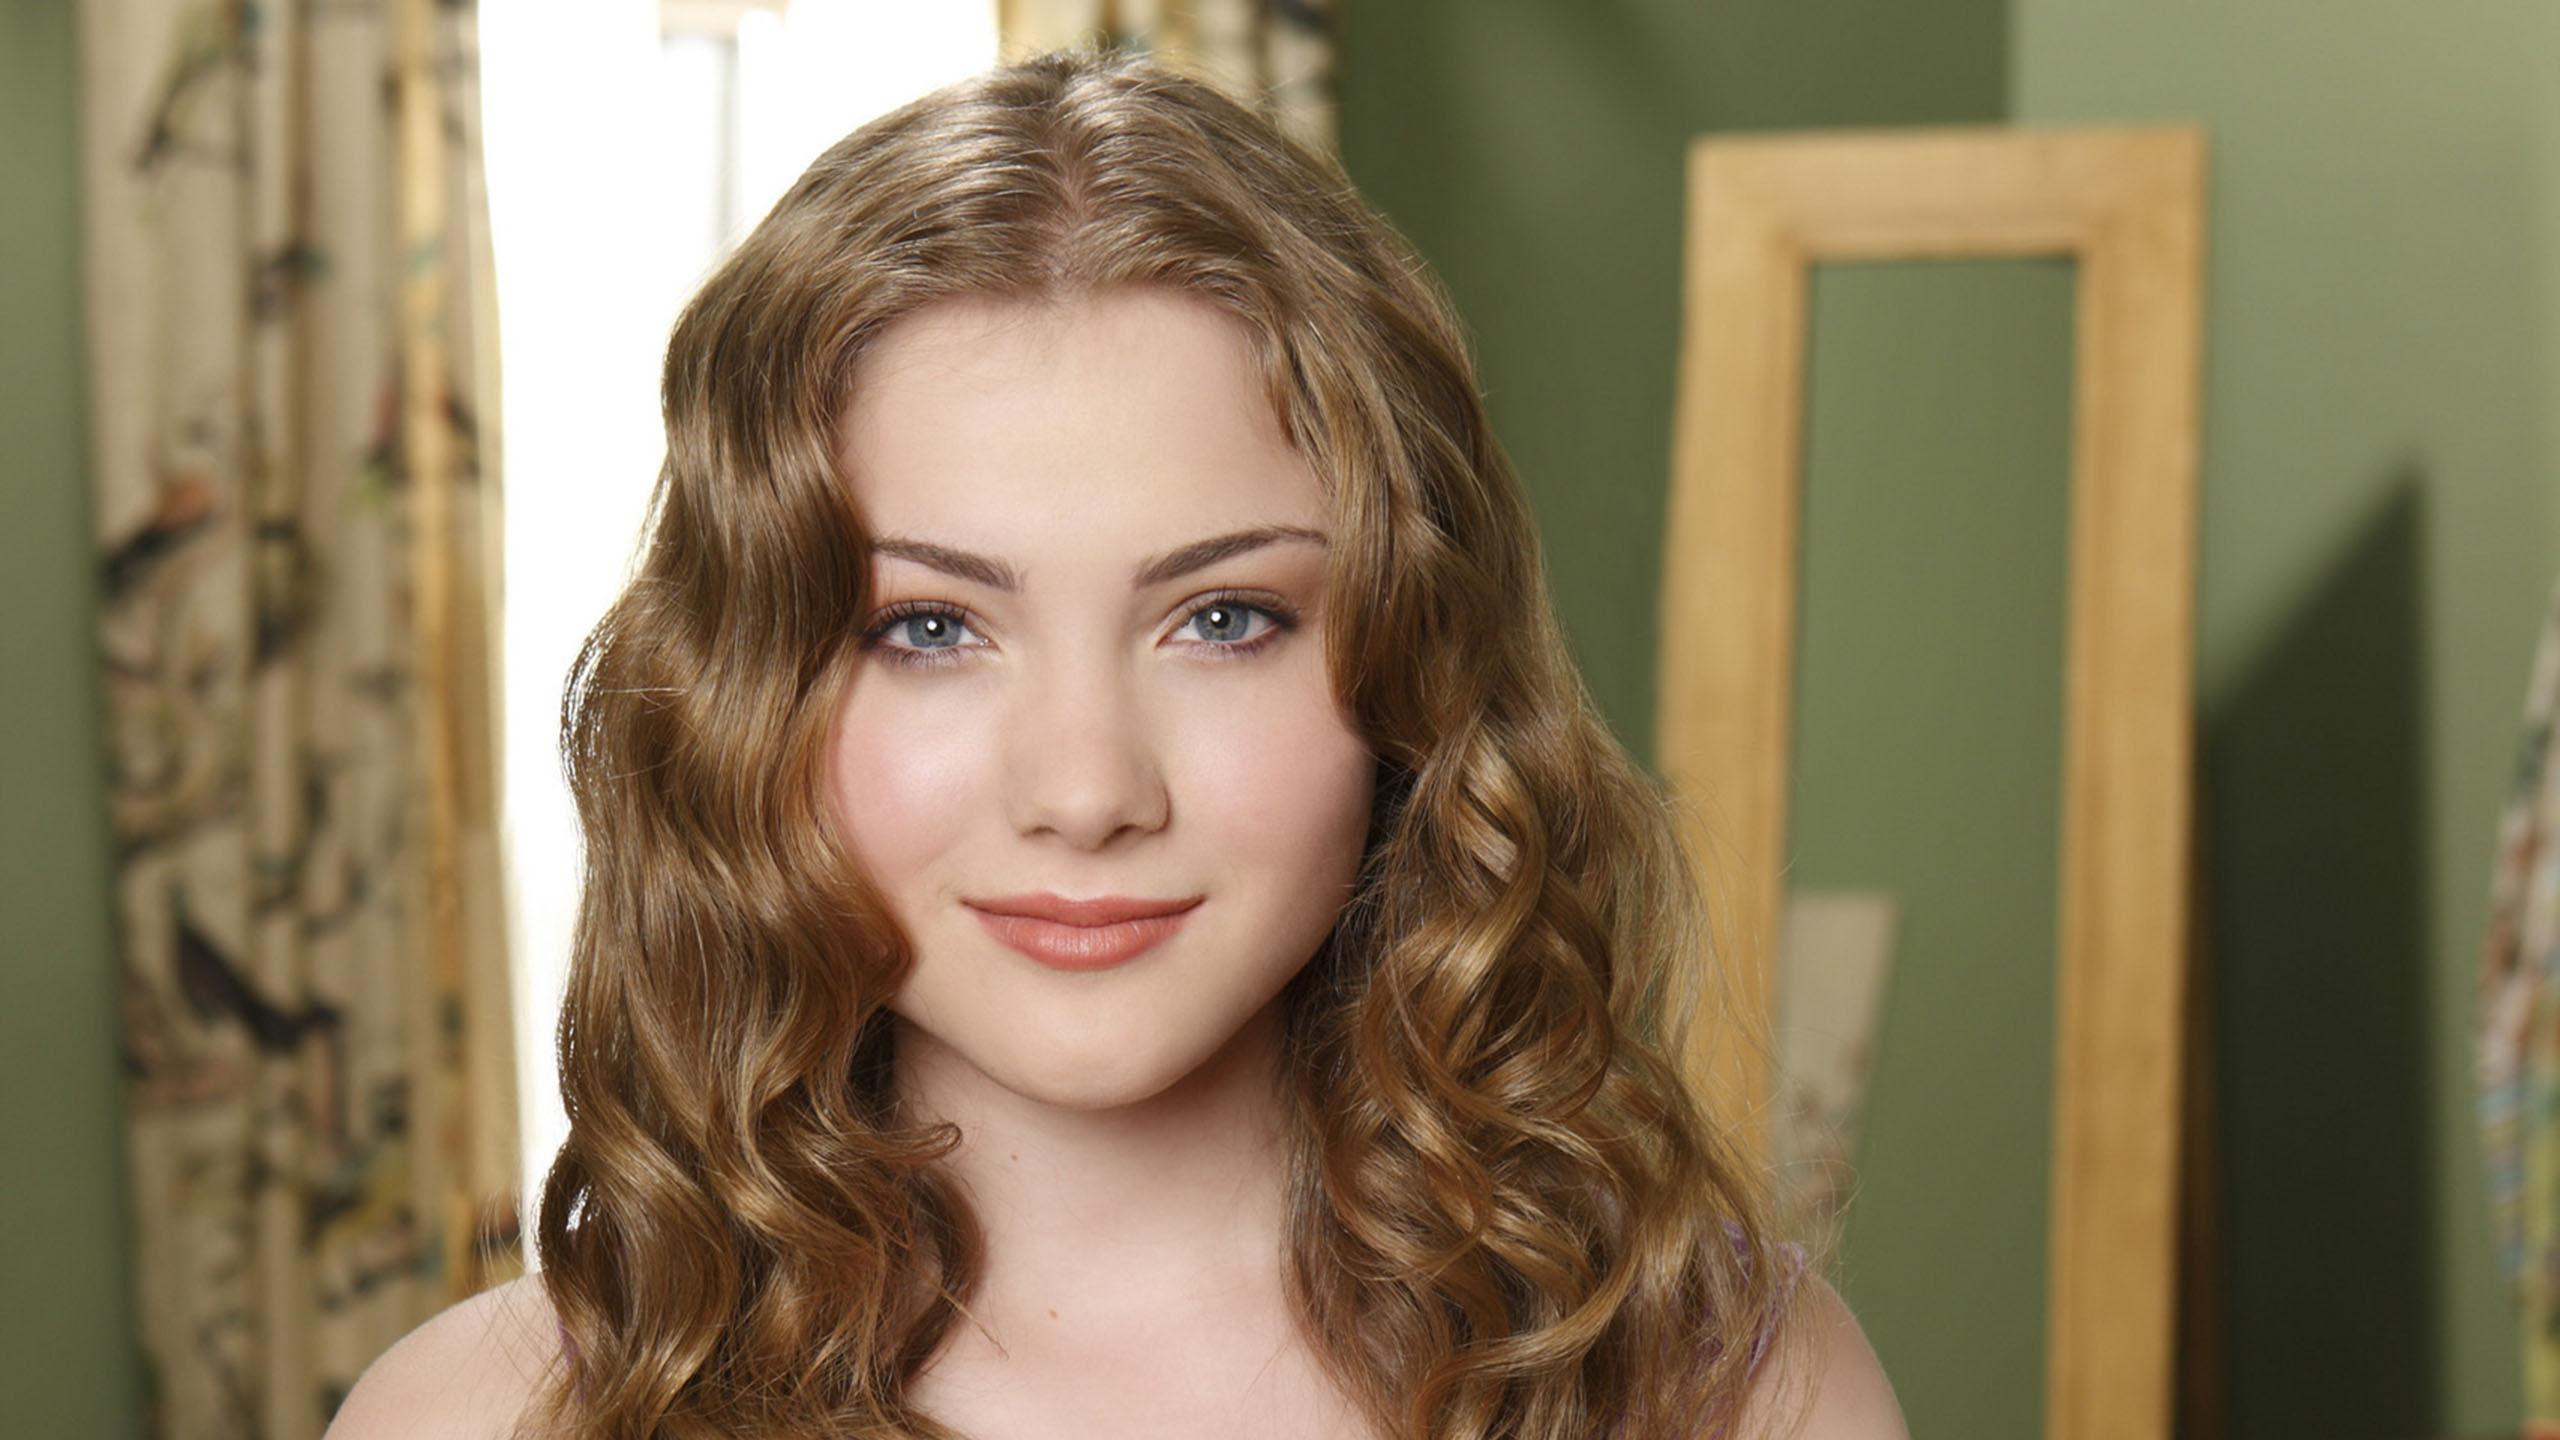 skyler samuels actress wallpaper background 55439